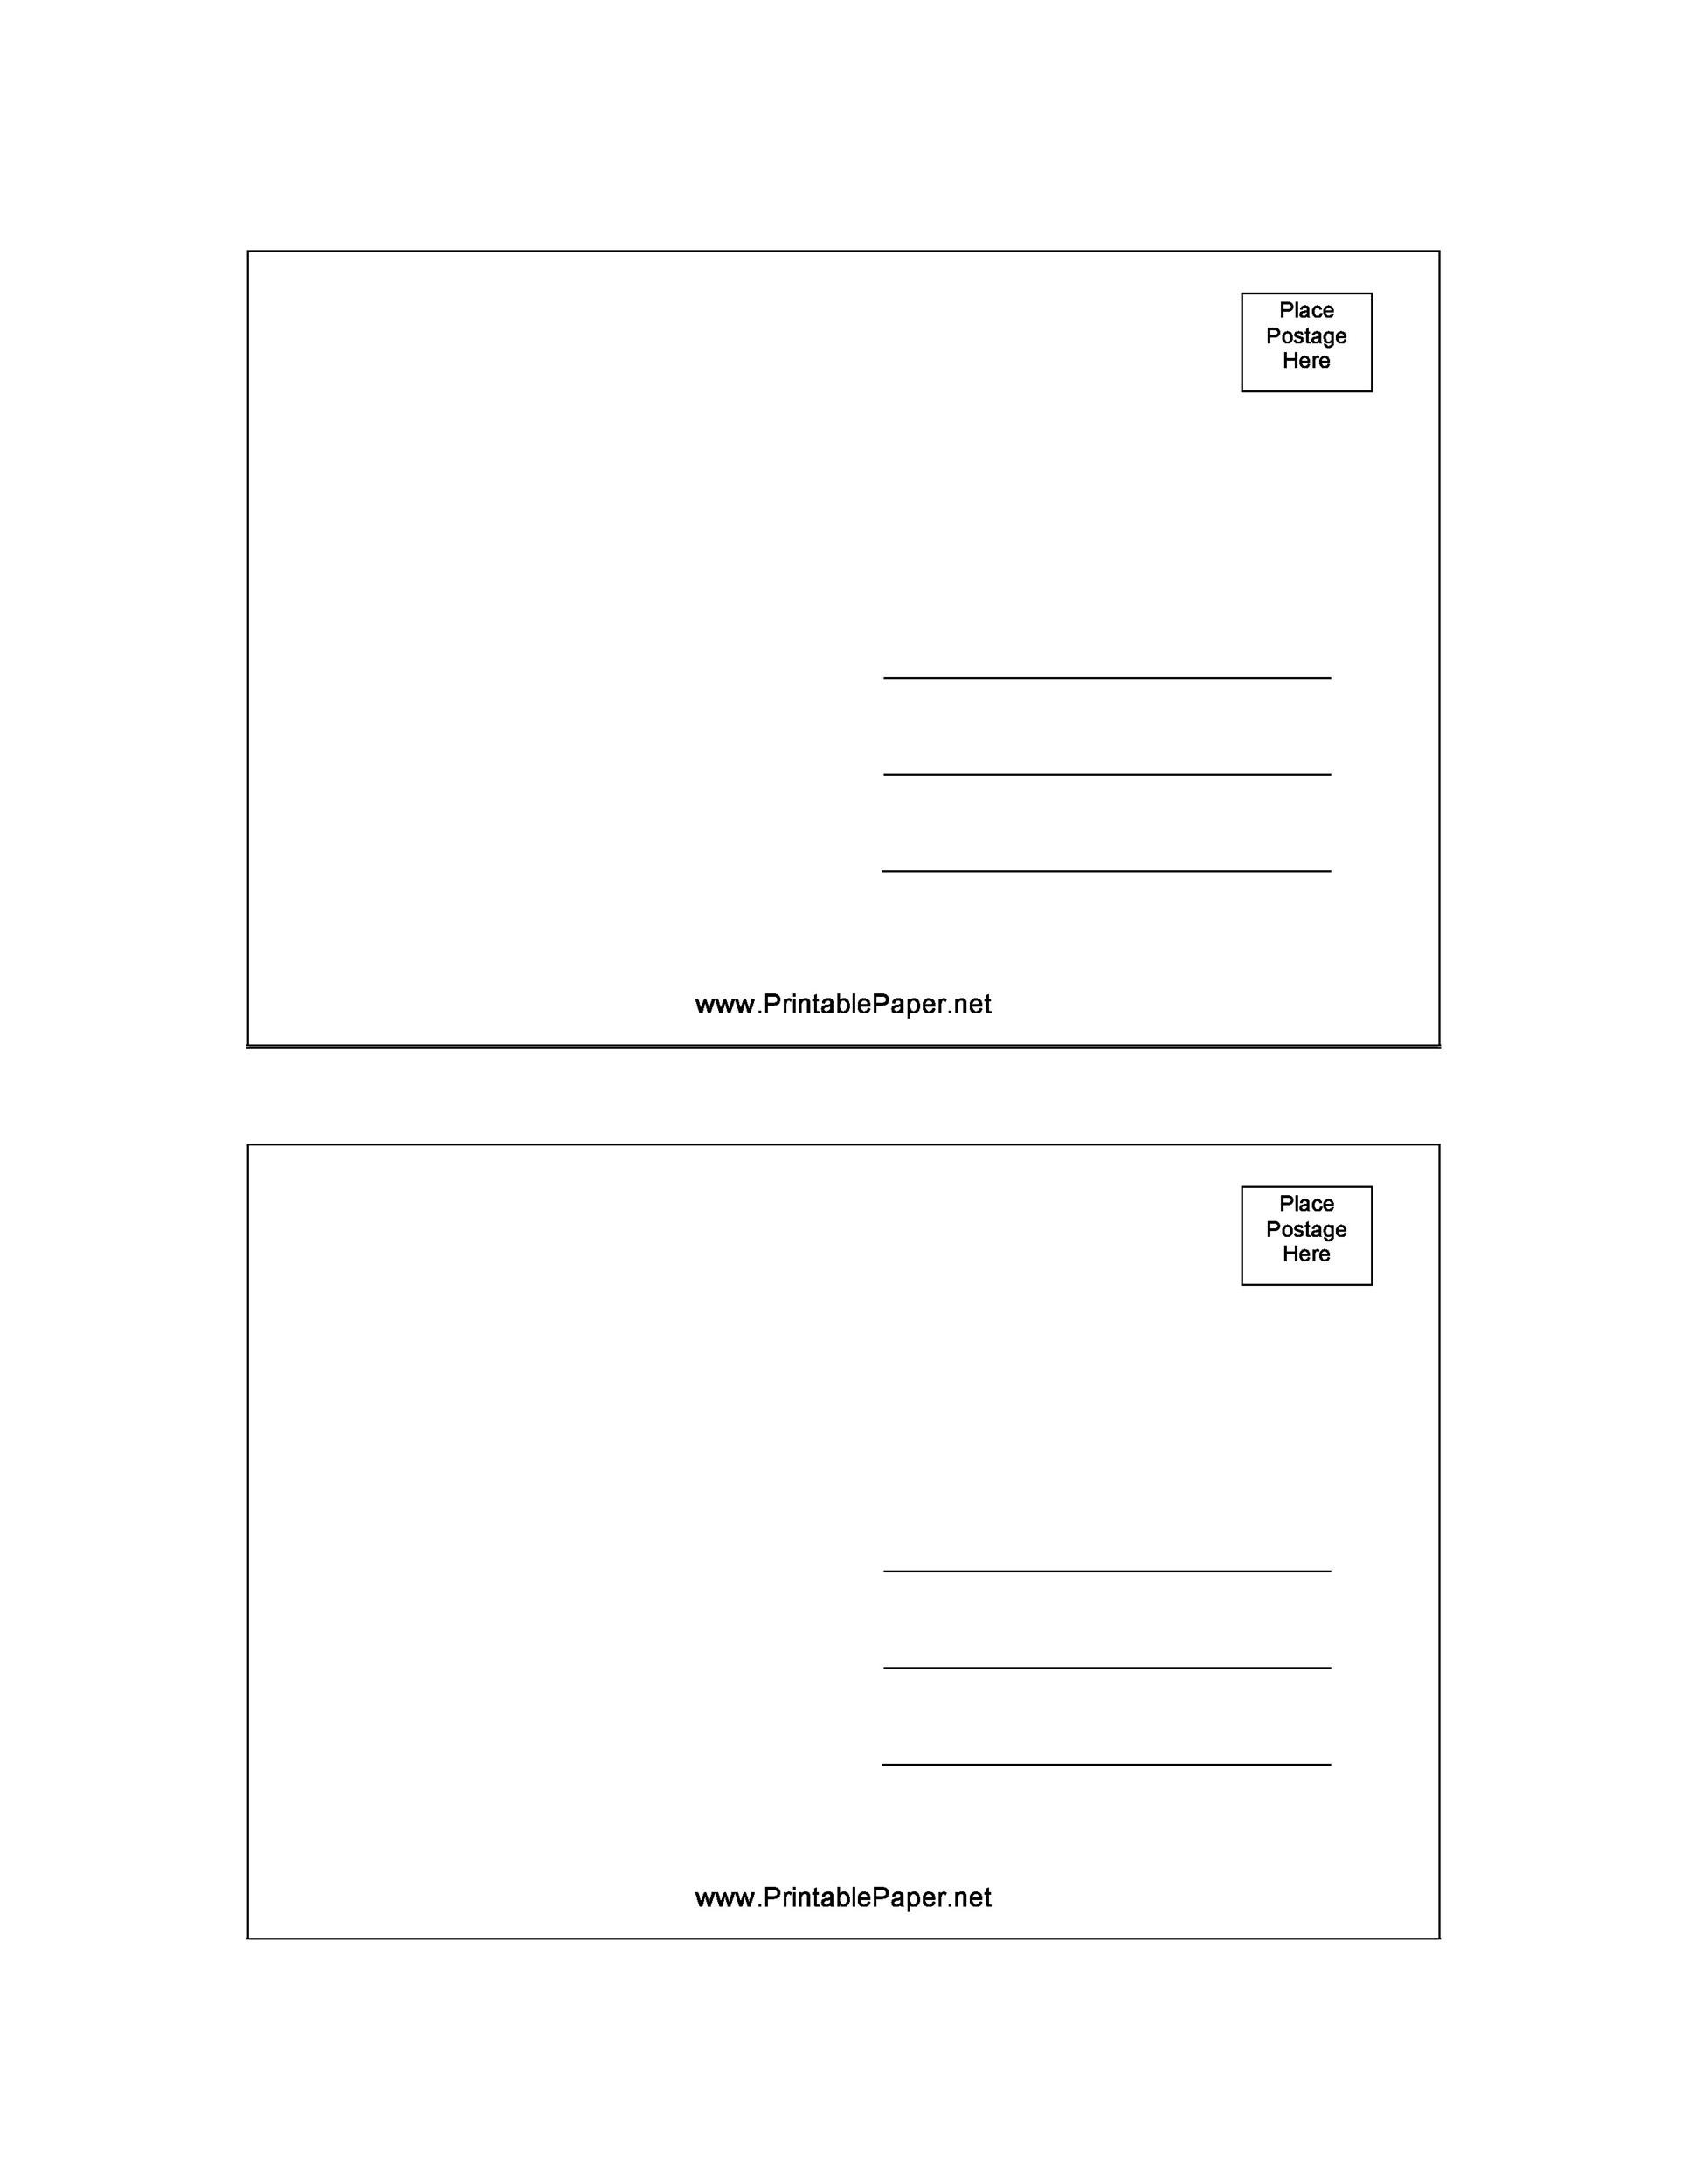 free postcard template 04 printable postcard template 04